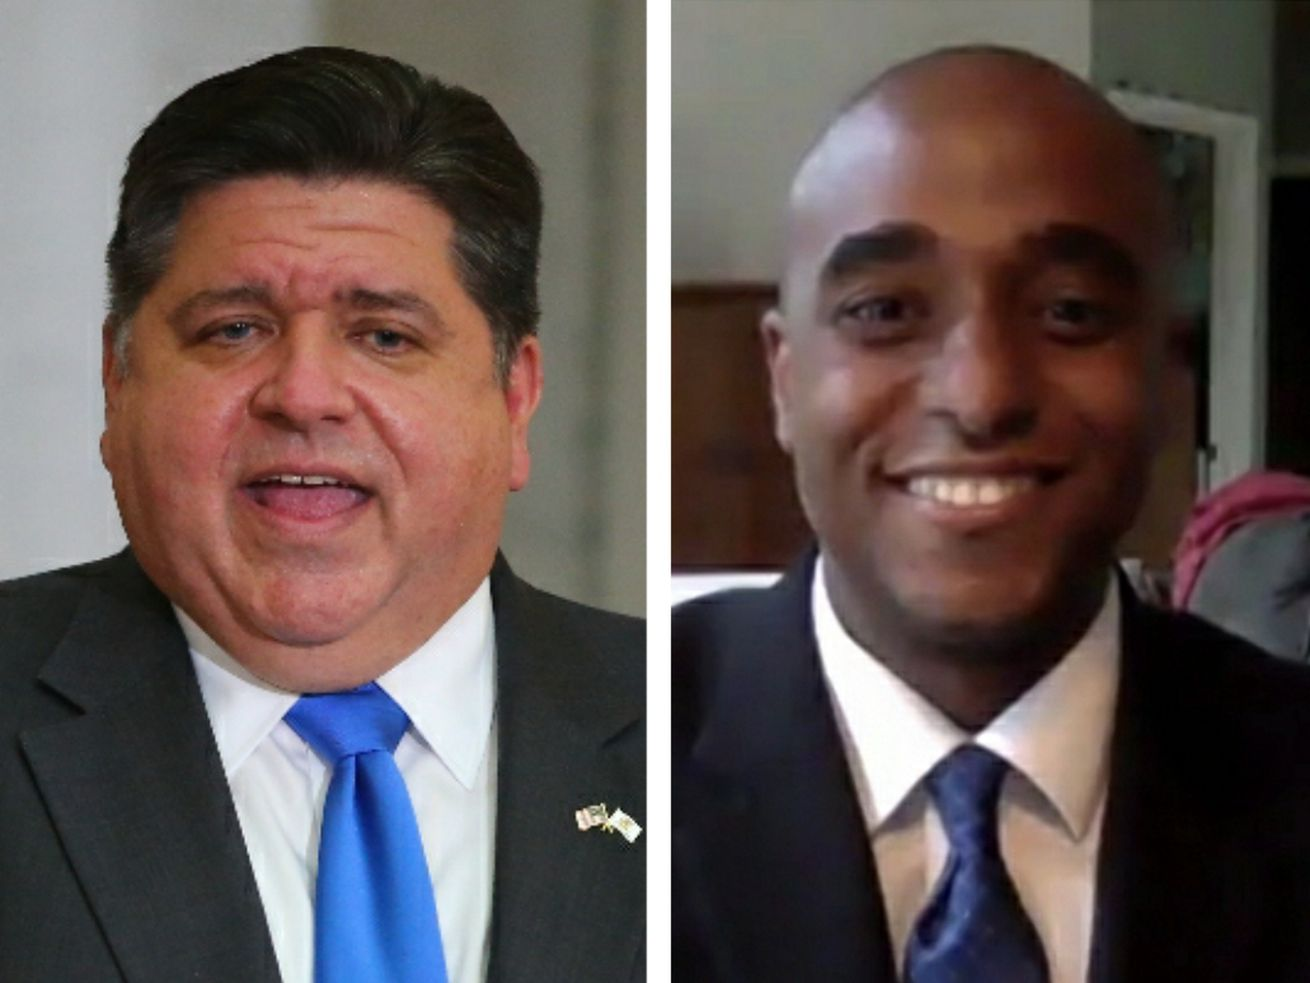 Gov. J.B. Pritzker, left; Democratic House candidate Ken Mejia-Beal, right.